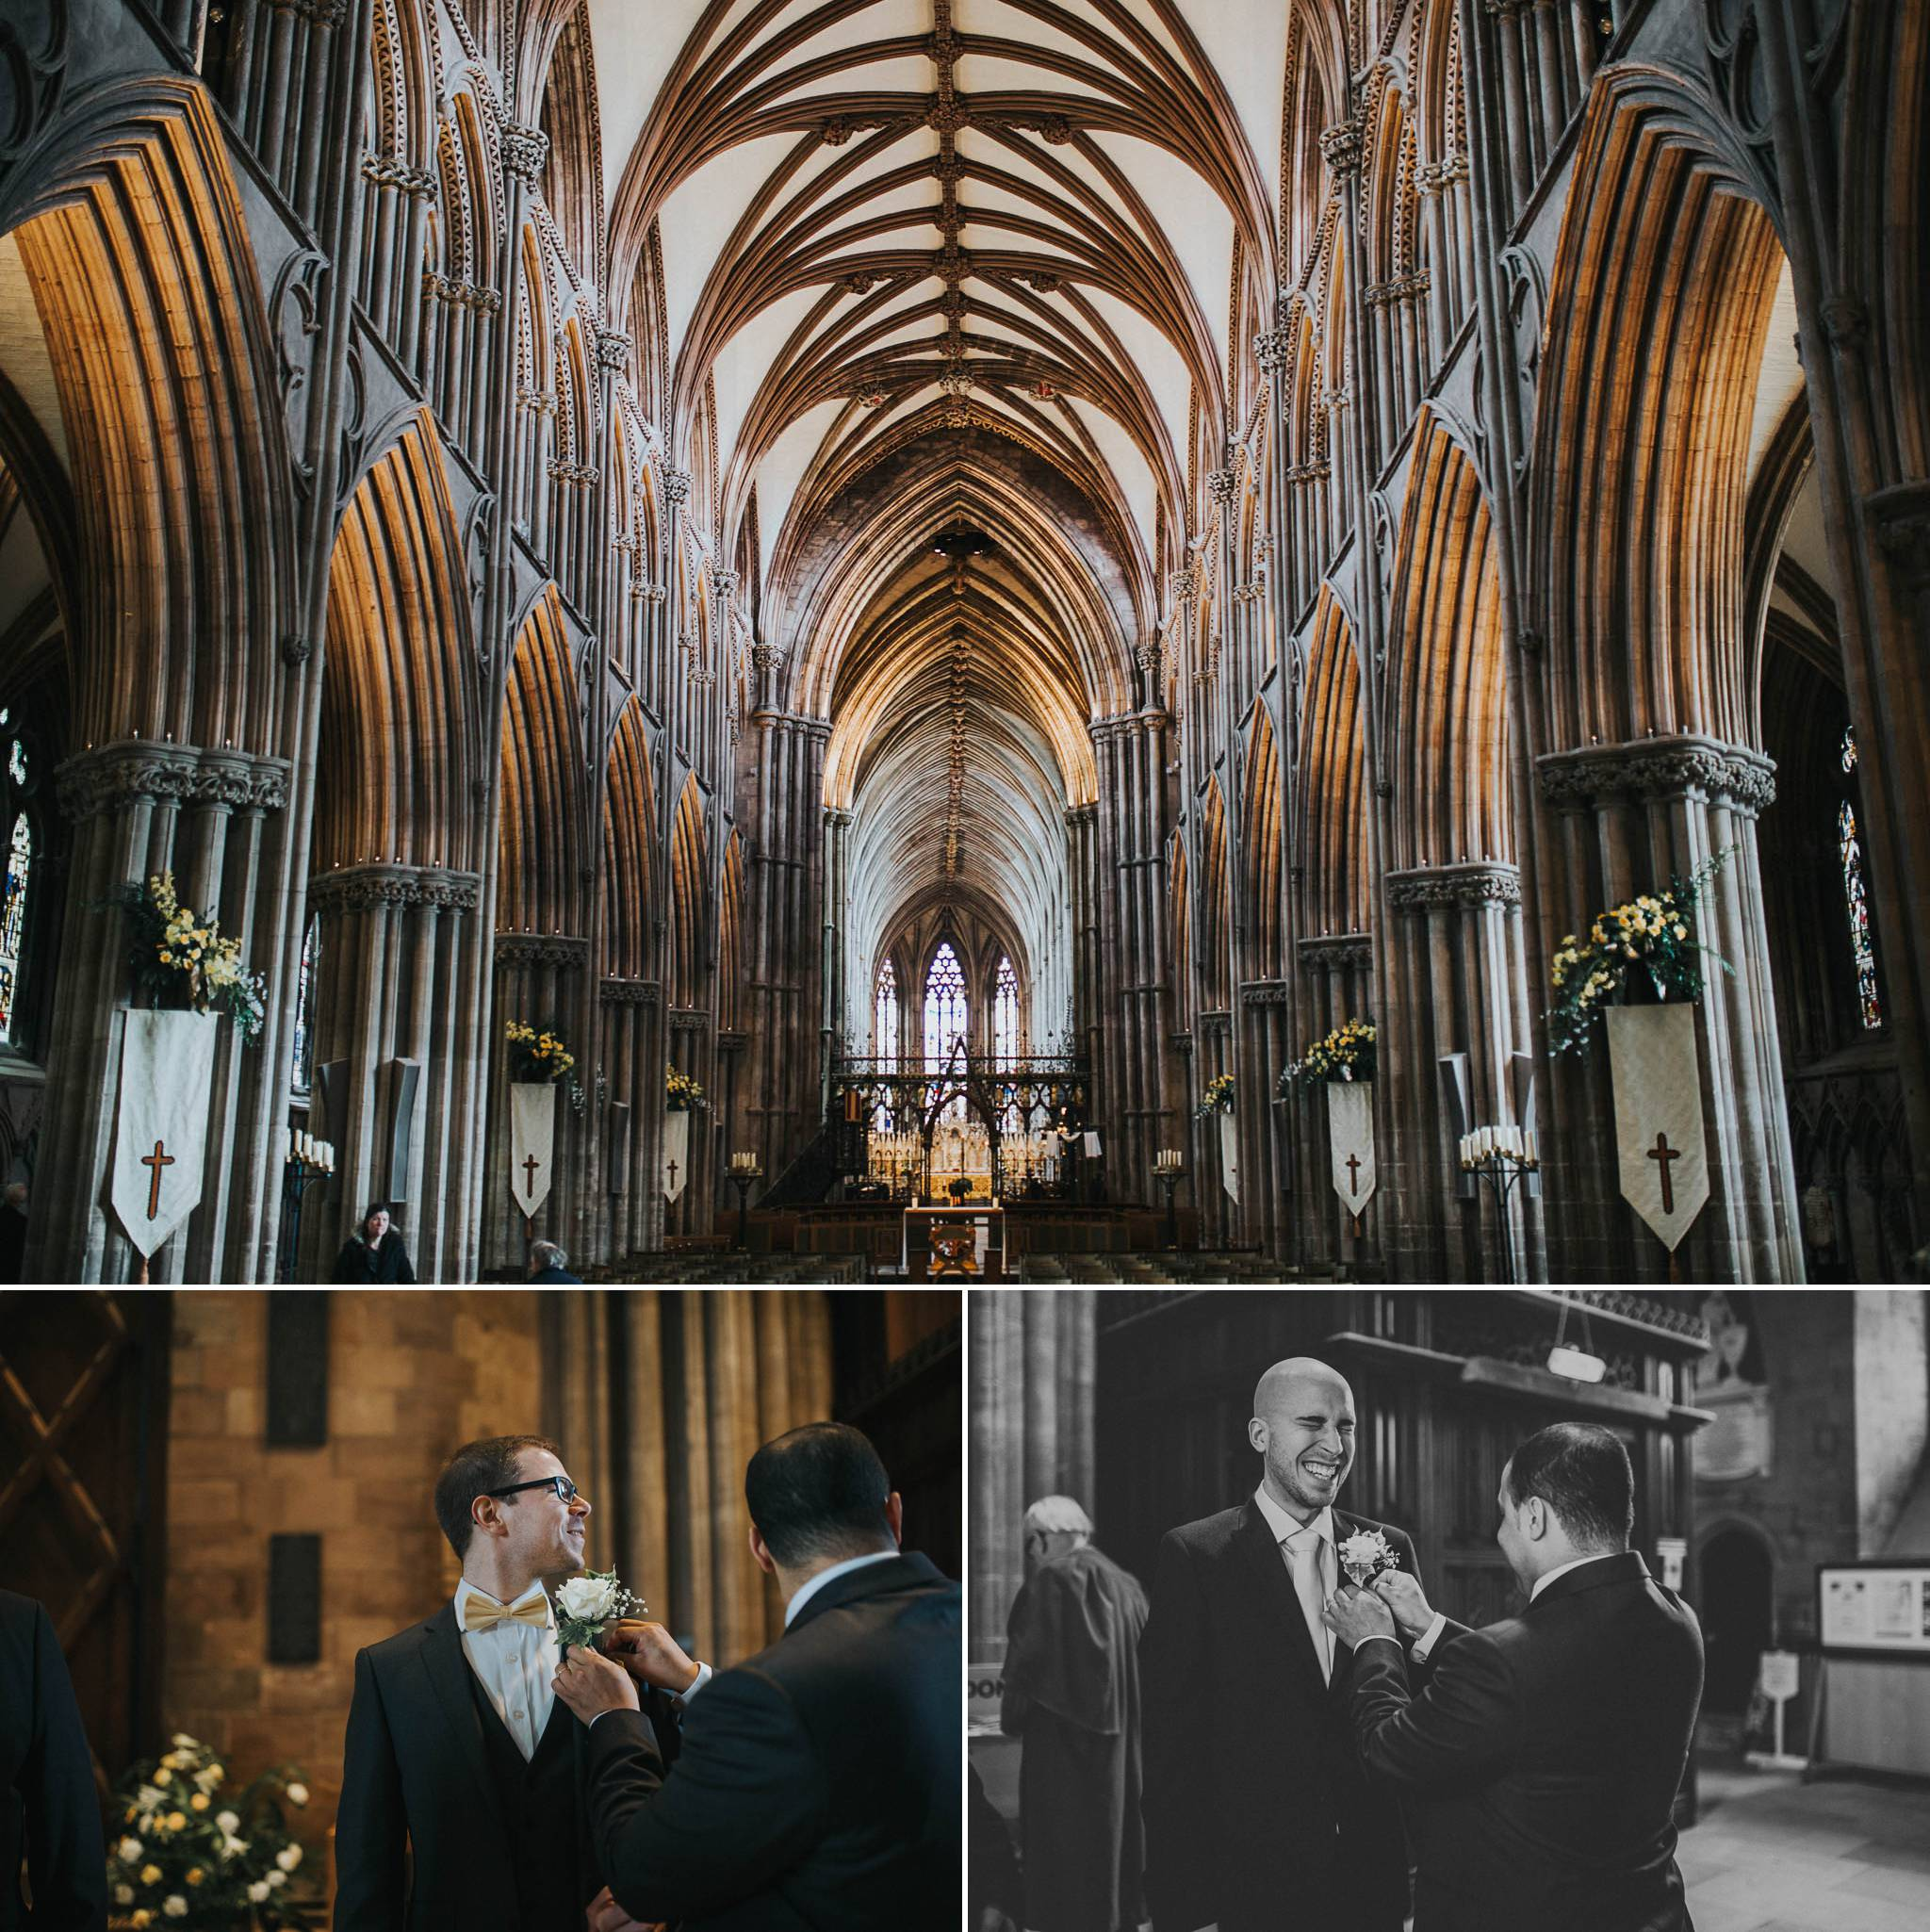 lichfield-cathedral-wedding-photography 2.jpg